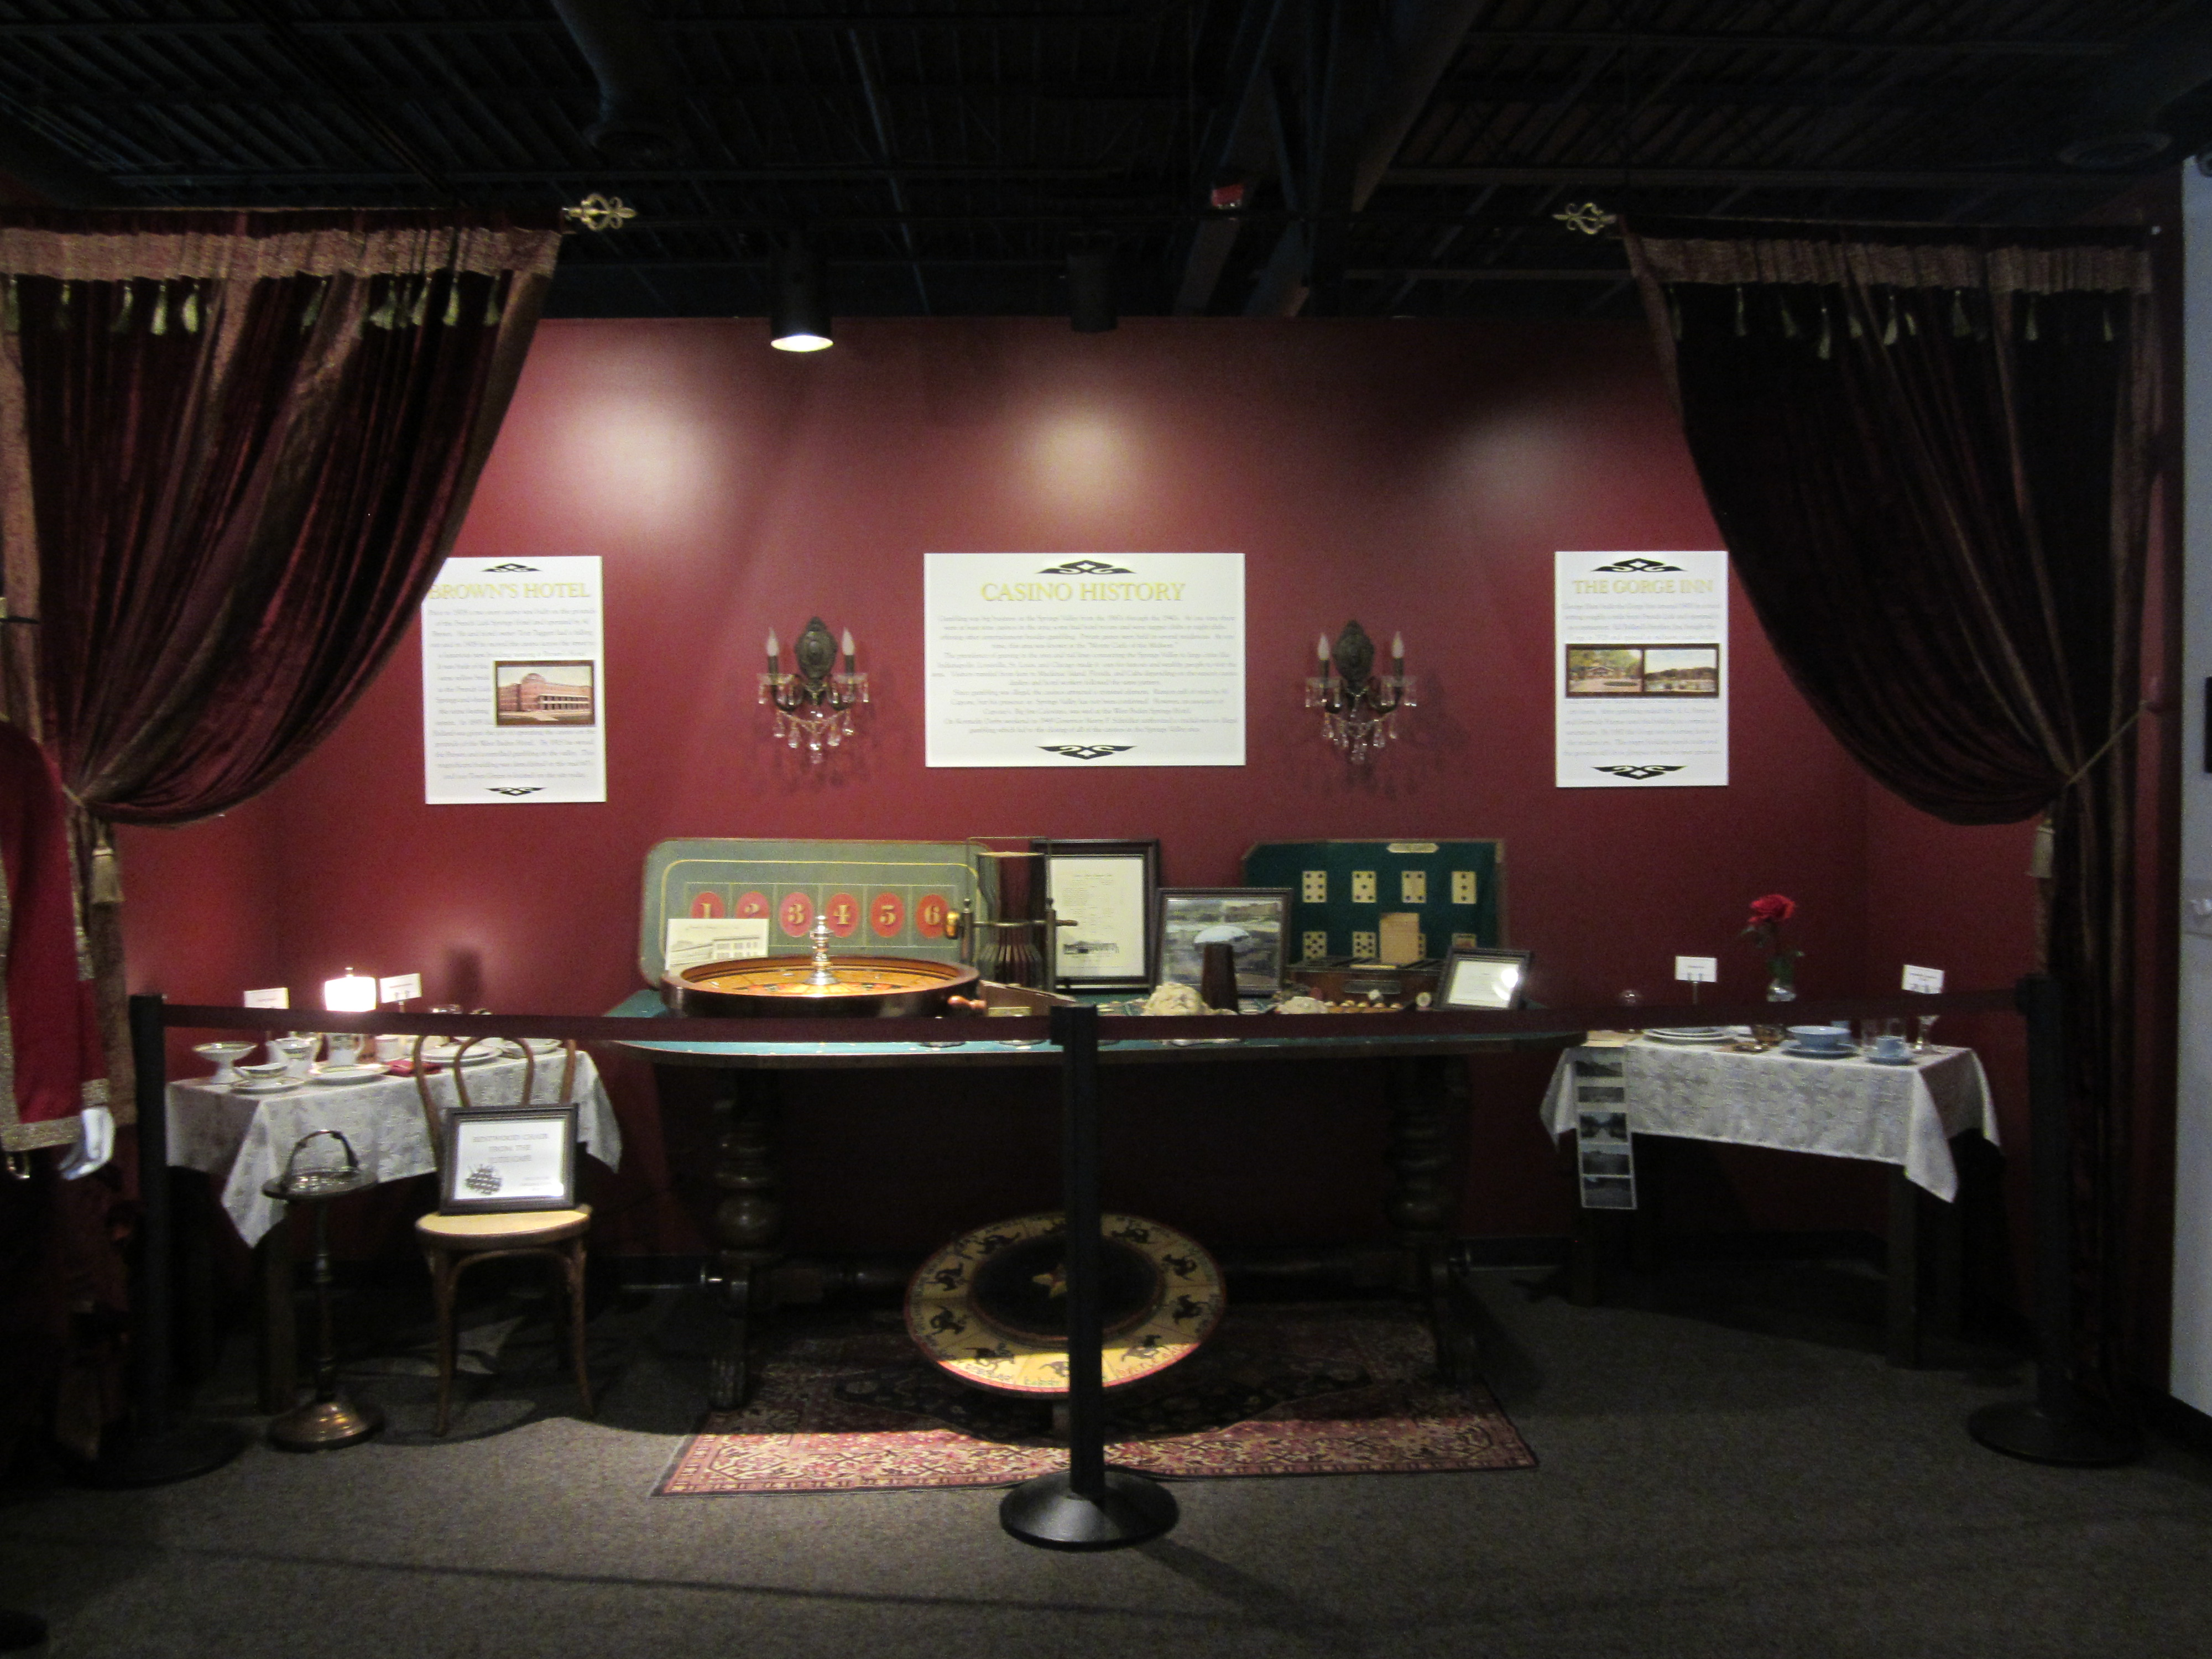 Casino Exhibit